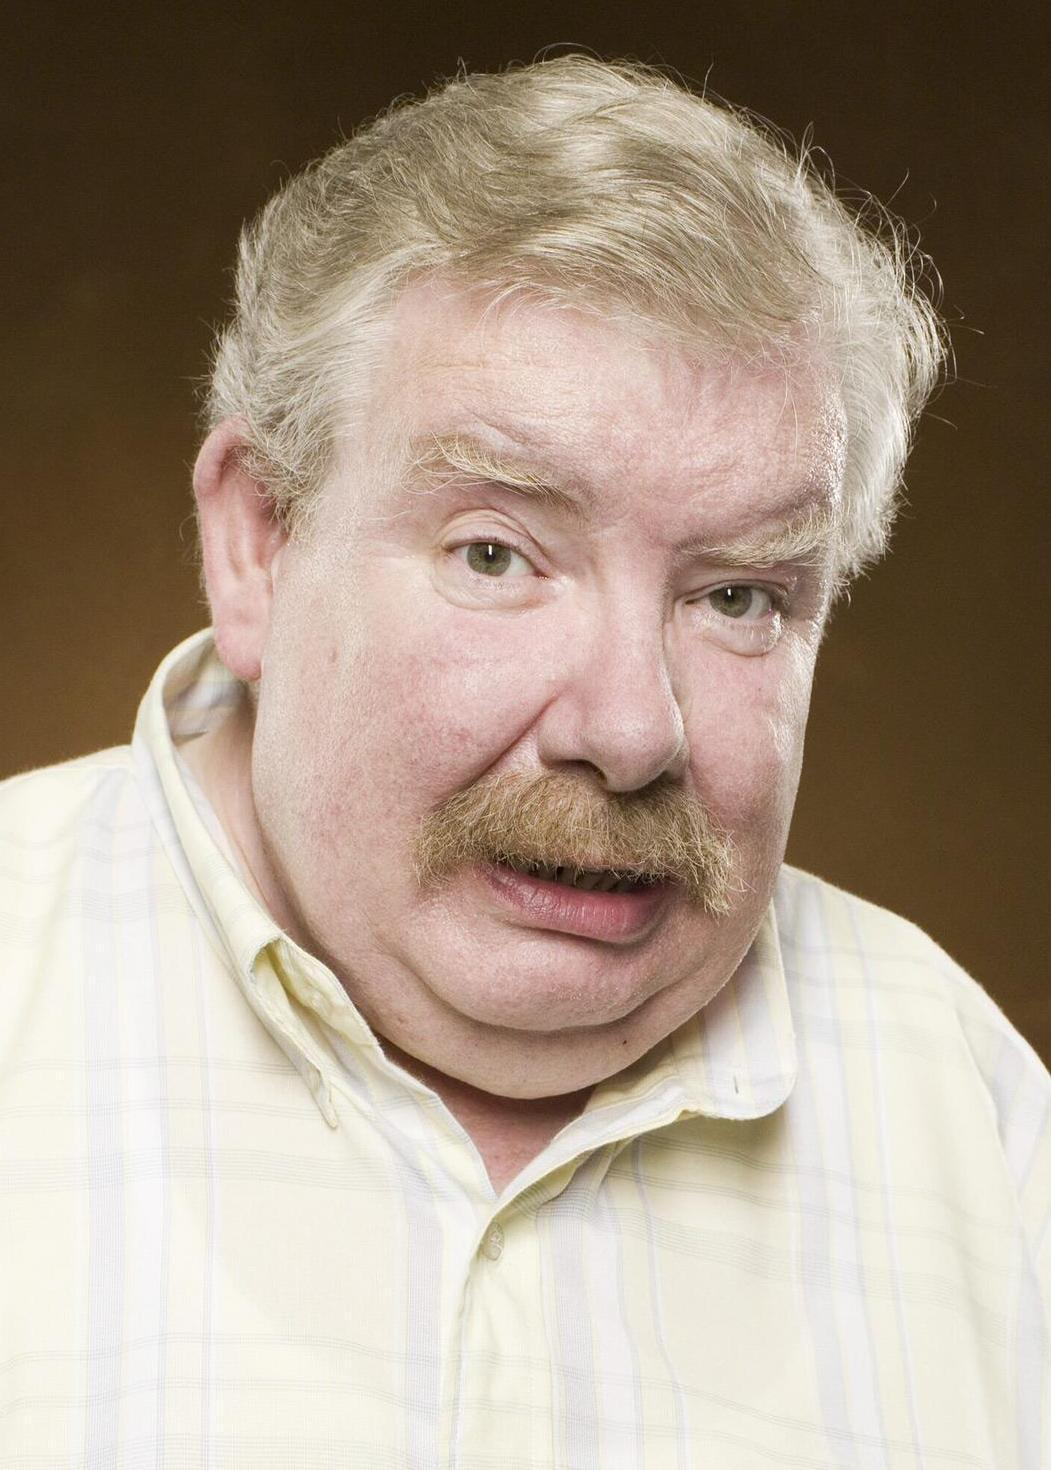 Where does  Vernon Dursley work at?